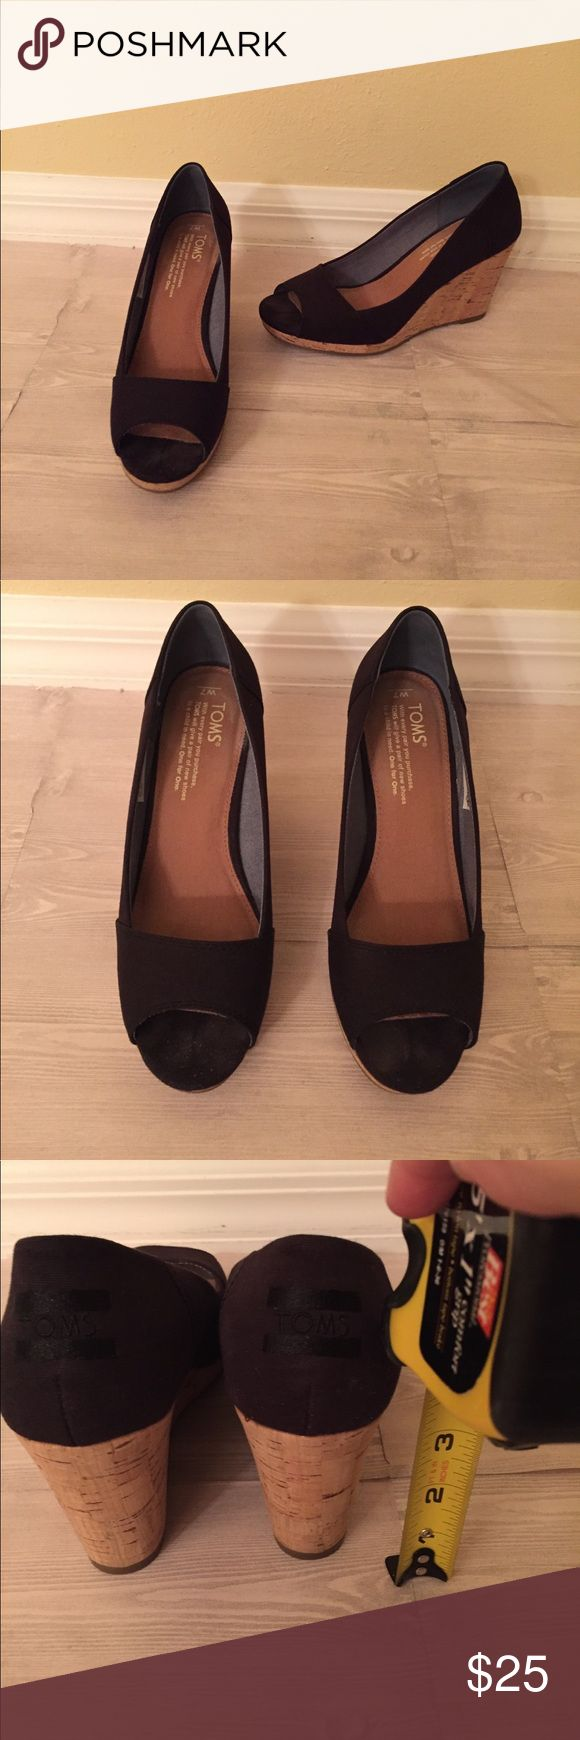 TOMS Black Wedges Size 7 TOMS Black Wedges Size 7. Good used condition. Wedge height in pics. Only signs of wear are on the sole and a little faintness in the bottom where your toe would be, see pic. Box not included. Toms Shoes Wedges